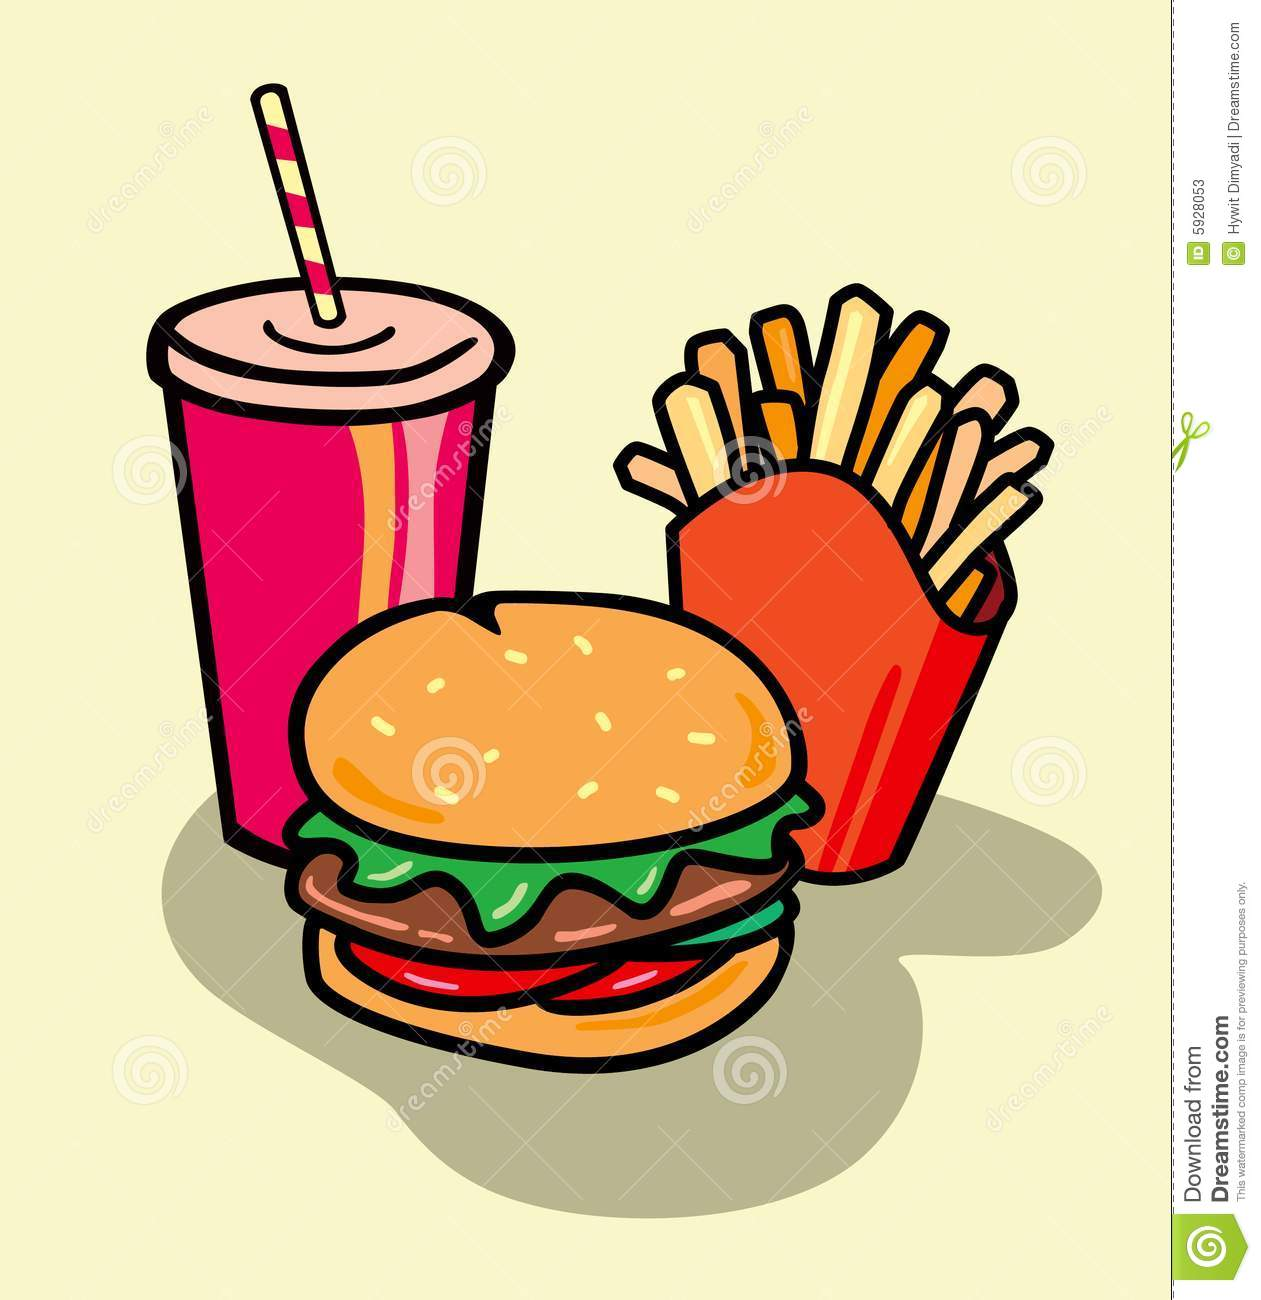 jpg royalty free download Junk free download best. Chip clipart unhealthy food.